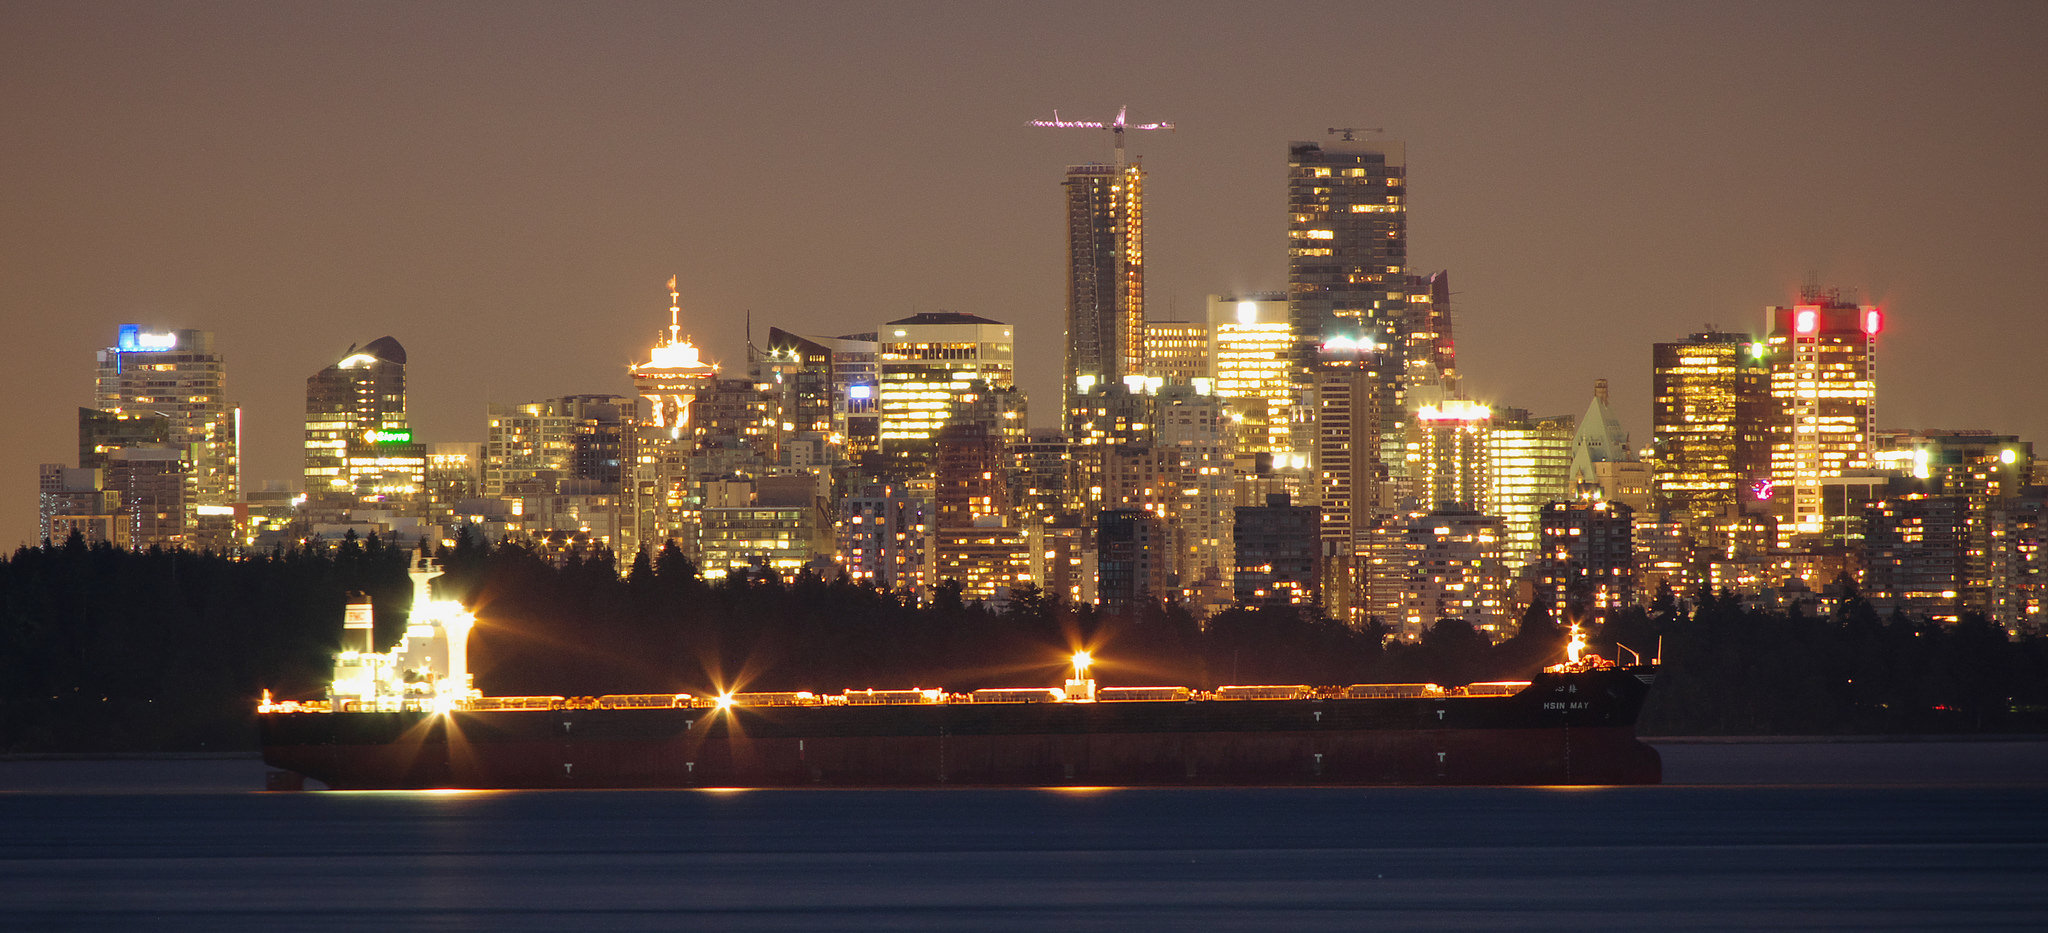 Rob Hurson - Hsin May and Vancouver seafront - Creative Commons